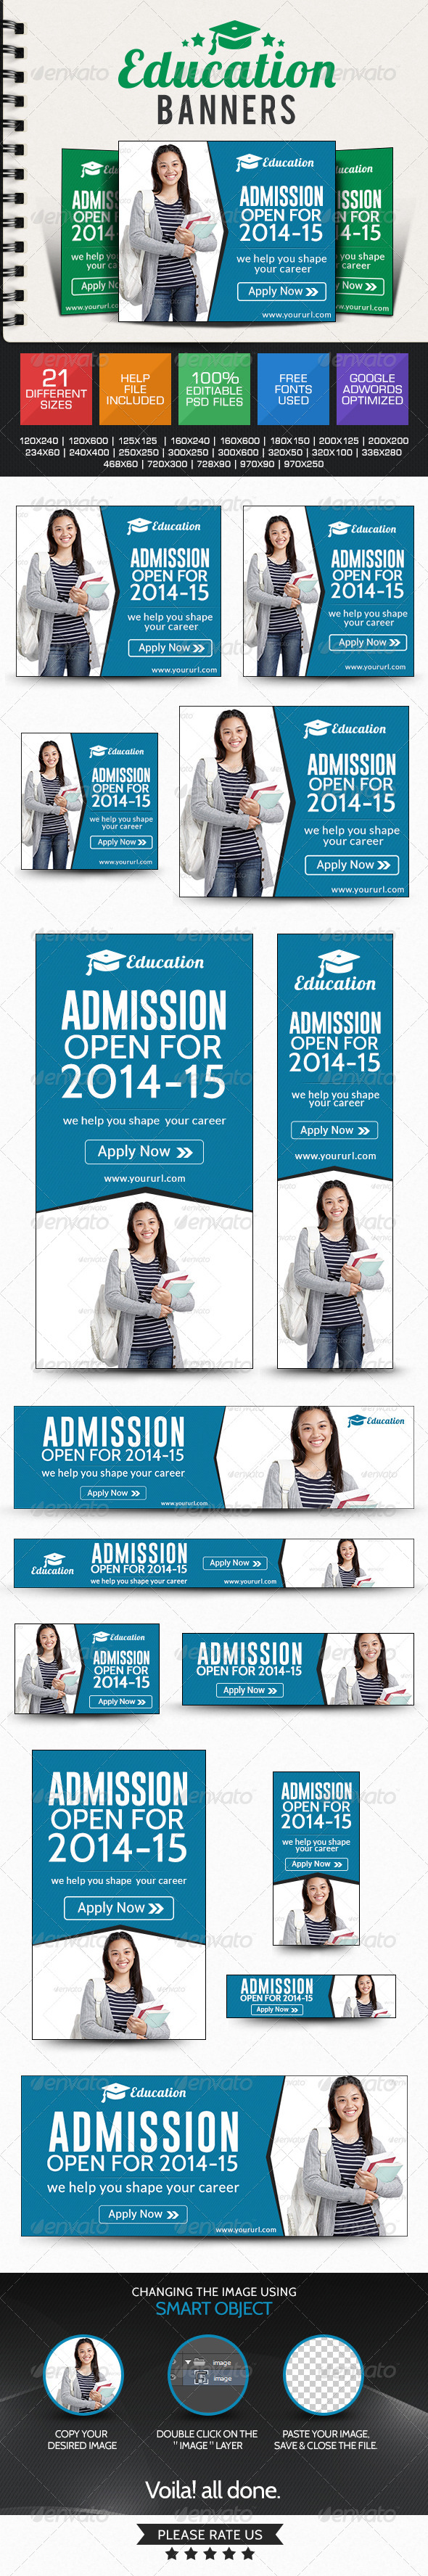 Pin by best Graphic Design on Web Banners Template PSD | Pinterest ...